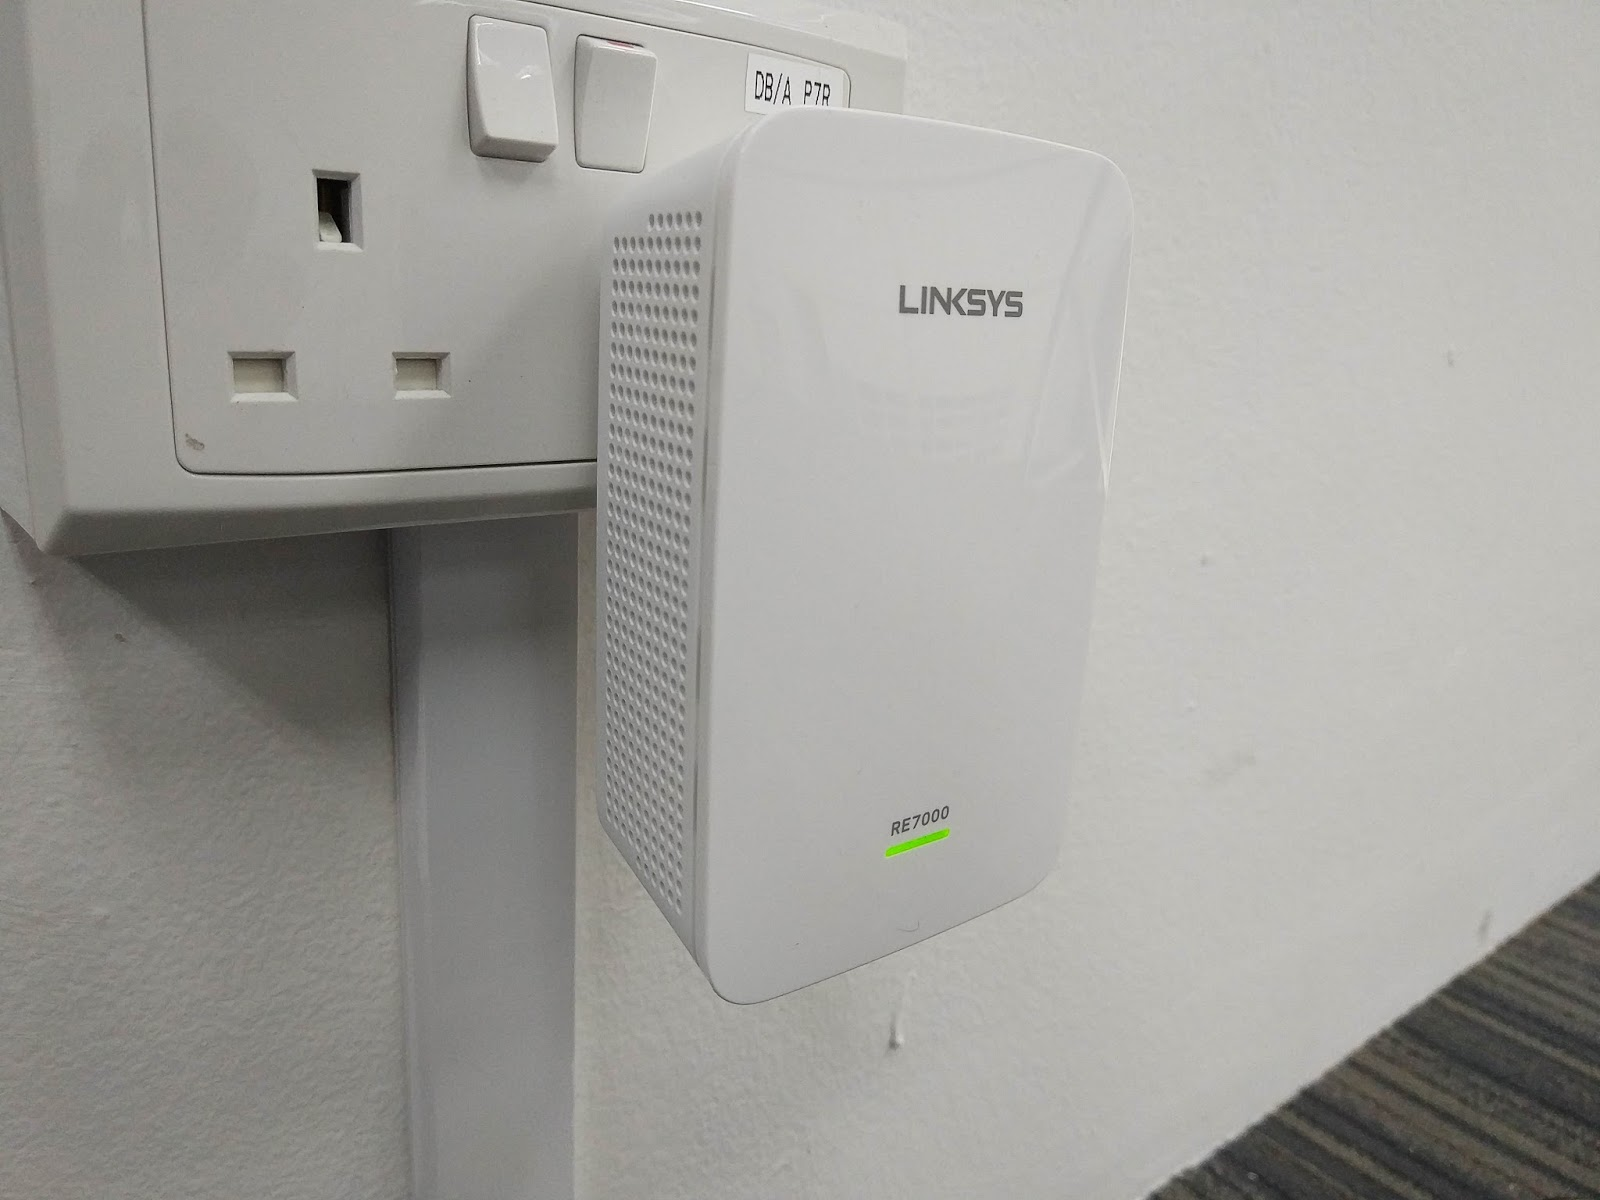 Setting up your Wireless Network with Linksys Wireless AC